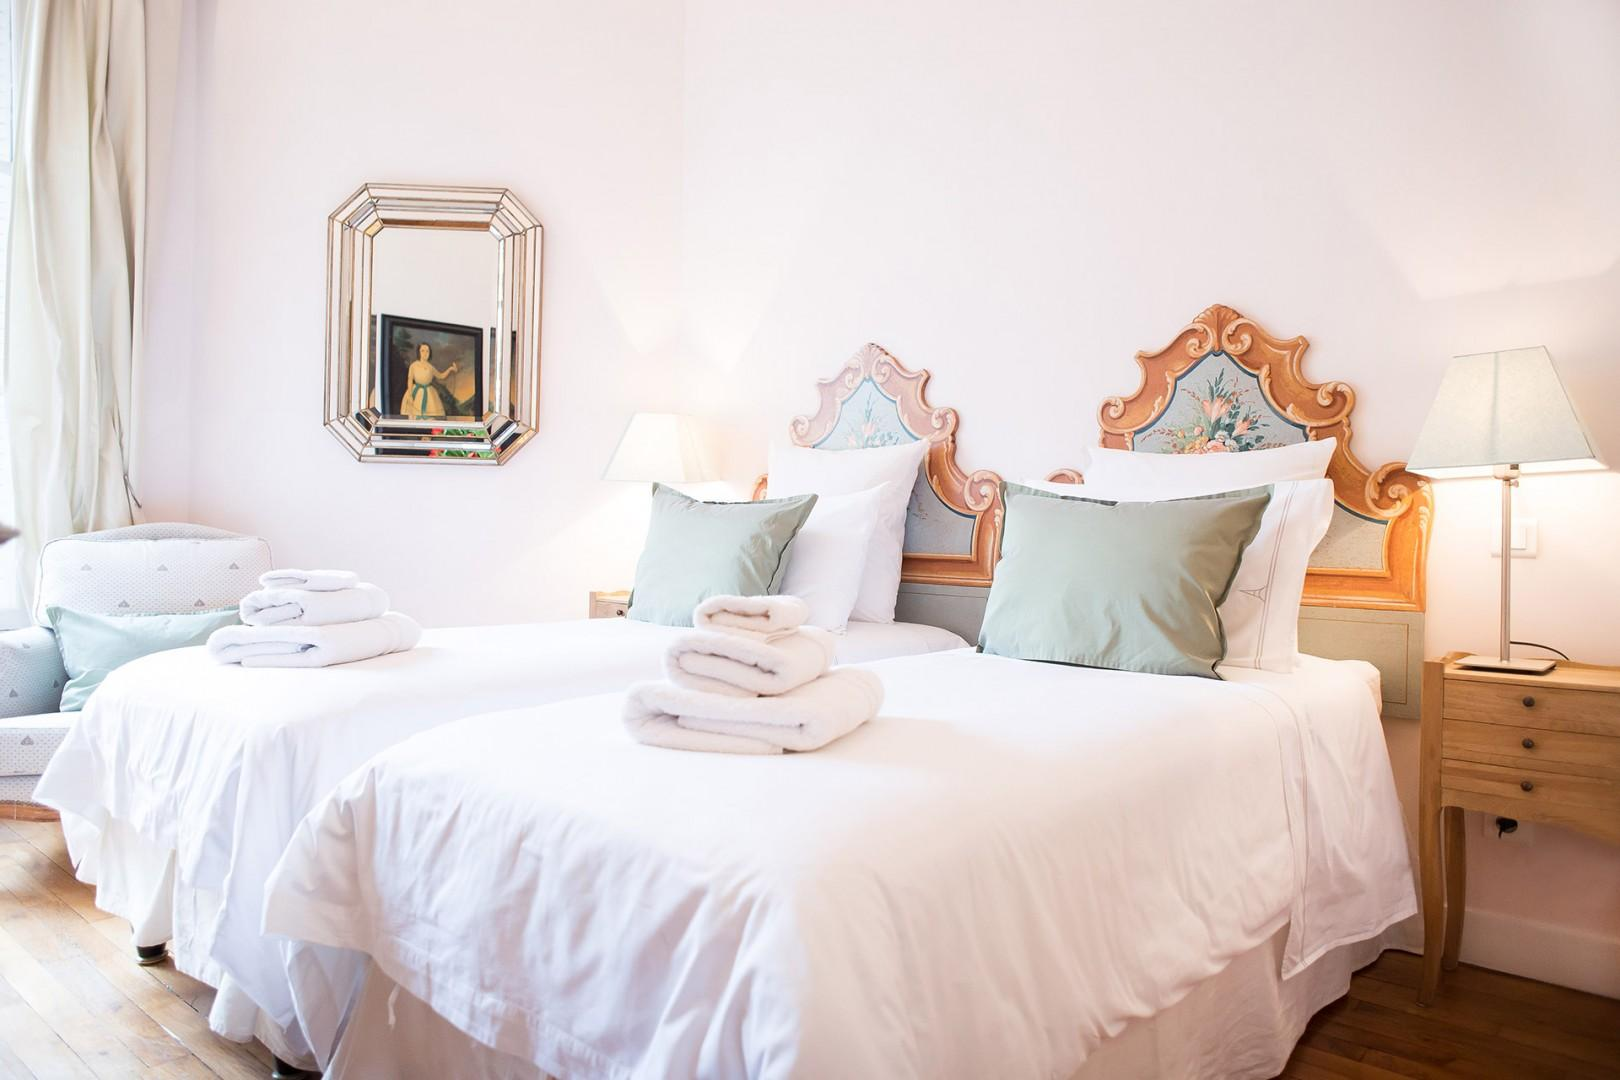 Enjoy fine furnishings and plenty of seclusion in bedroom 2.